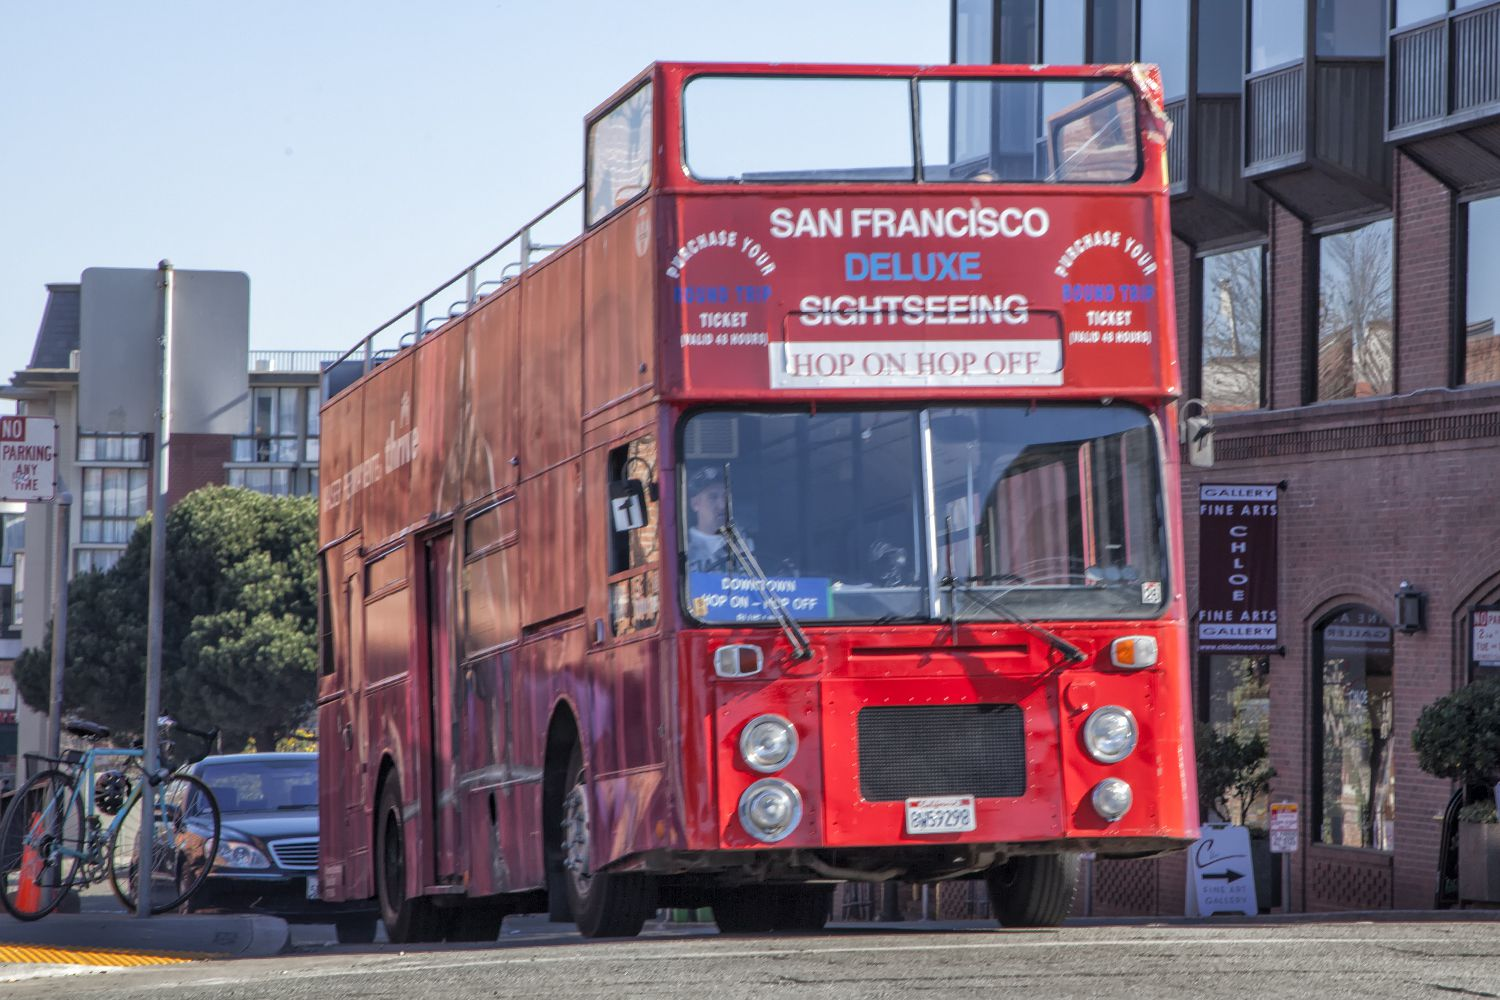 San Francisco Bus Tours